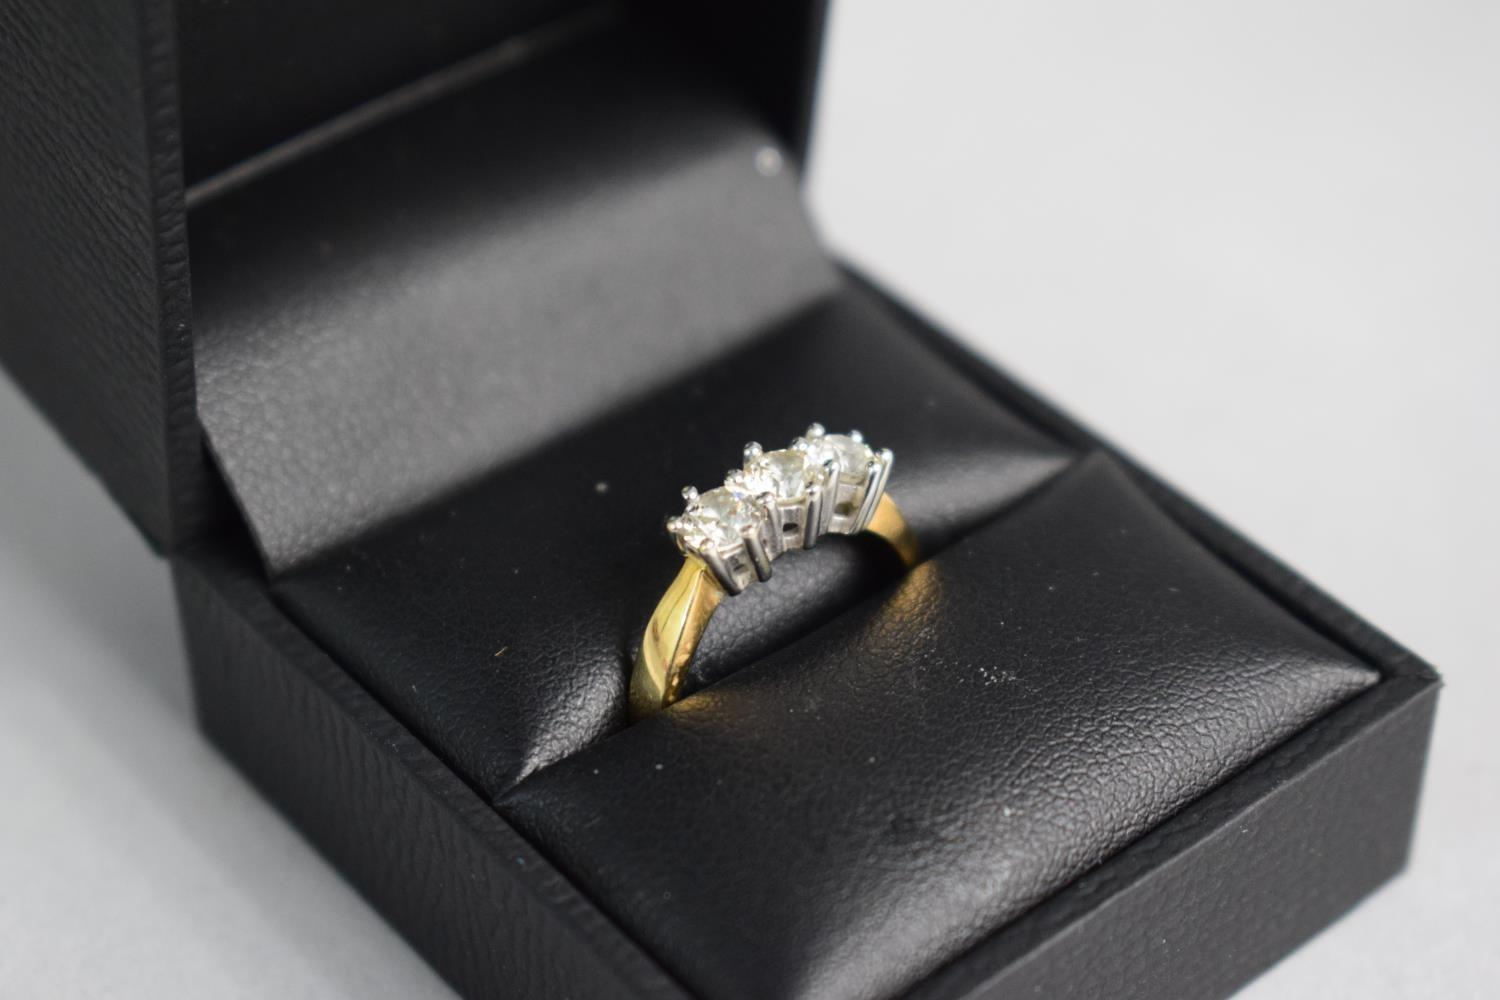 Lot 308 - A 9ct Gold Diamond Trilogy Ring, Each Diamond Approx .25 of a Carat on Visual Inspection. Size L.5